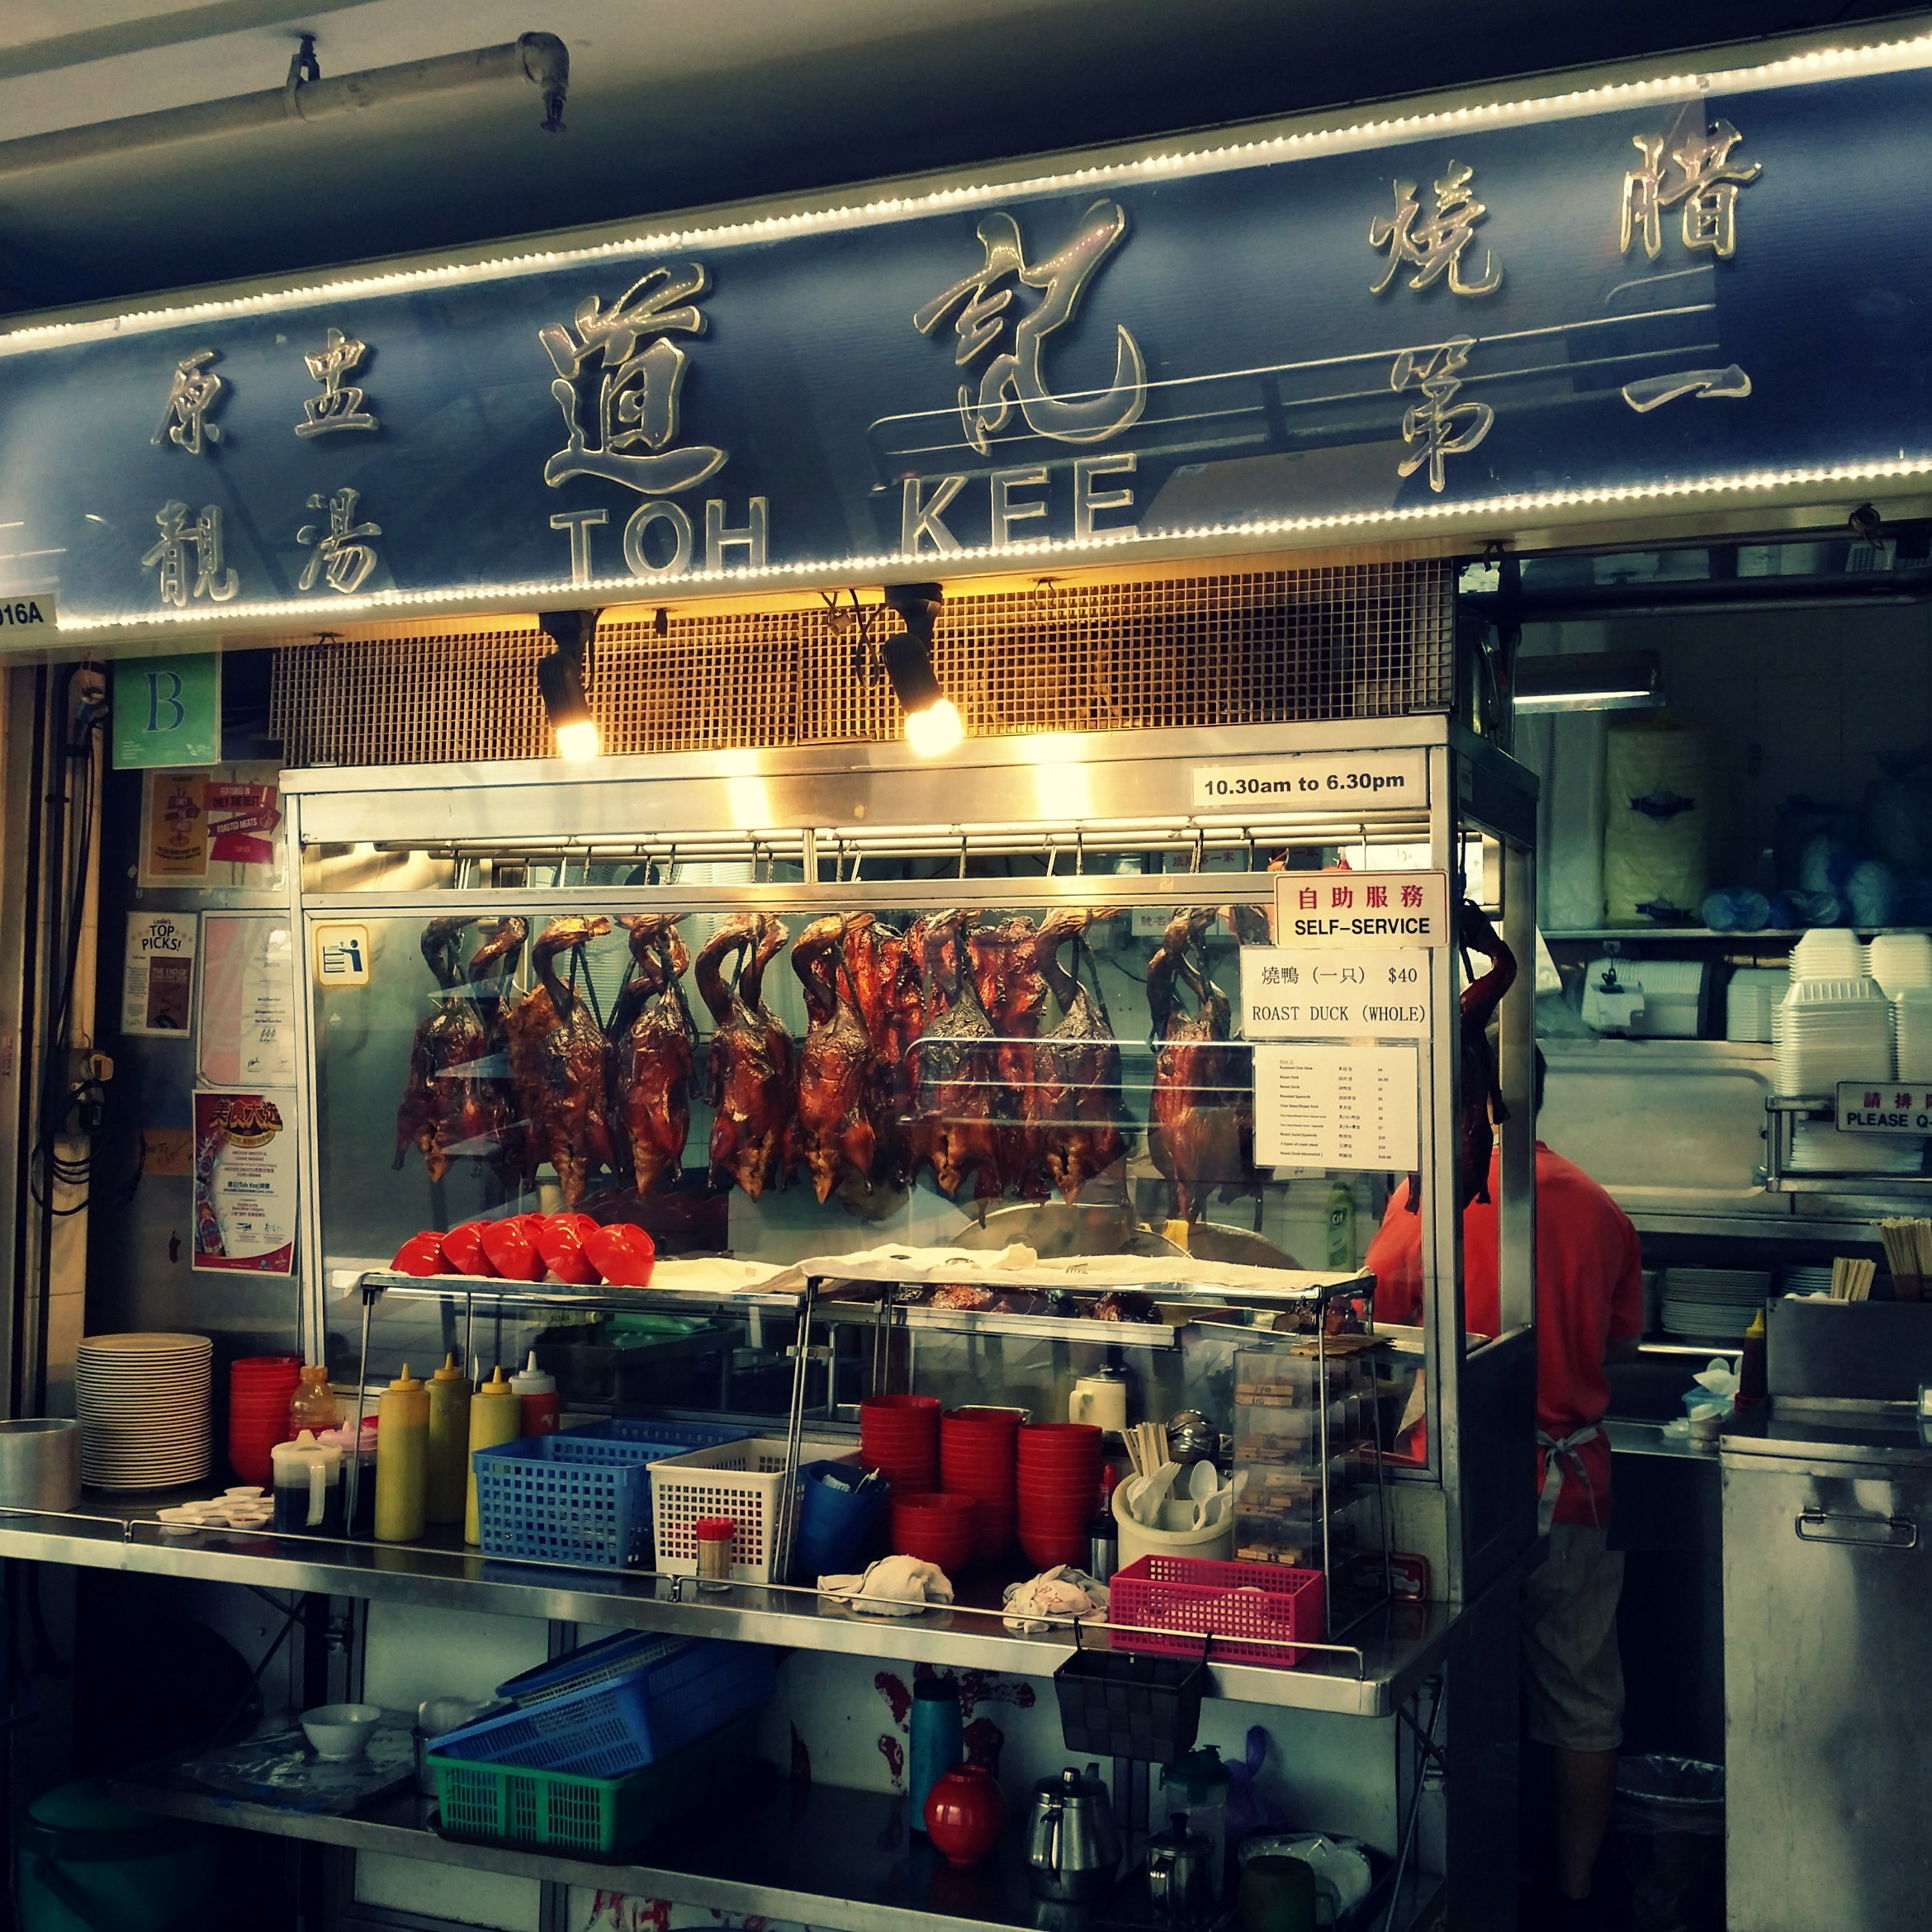 Singapore Hawker Centre Toh Kee